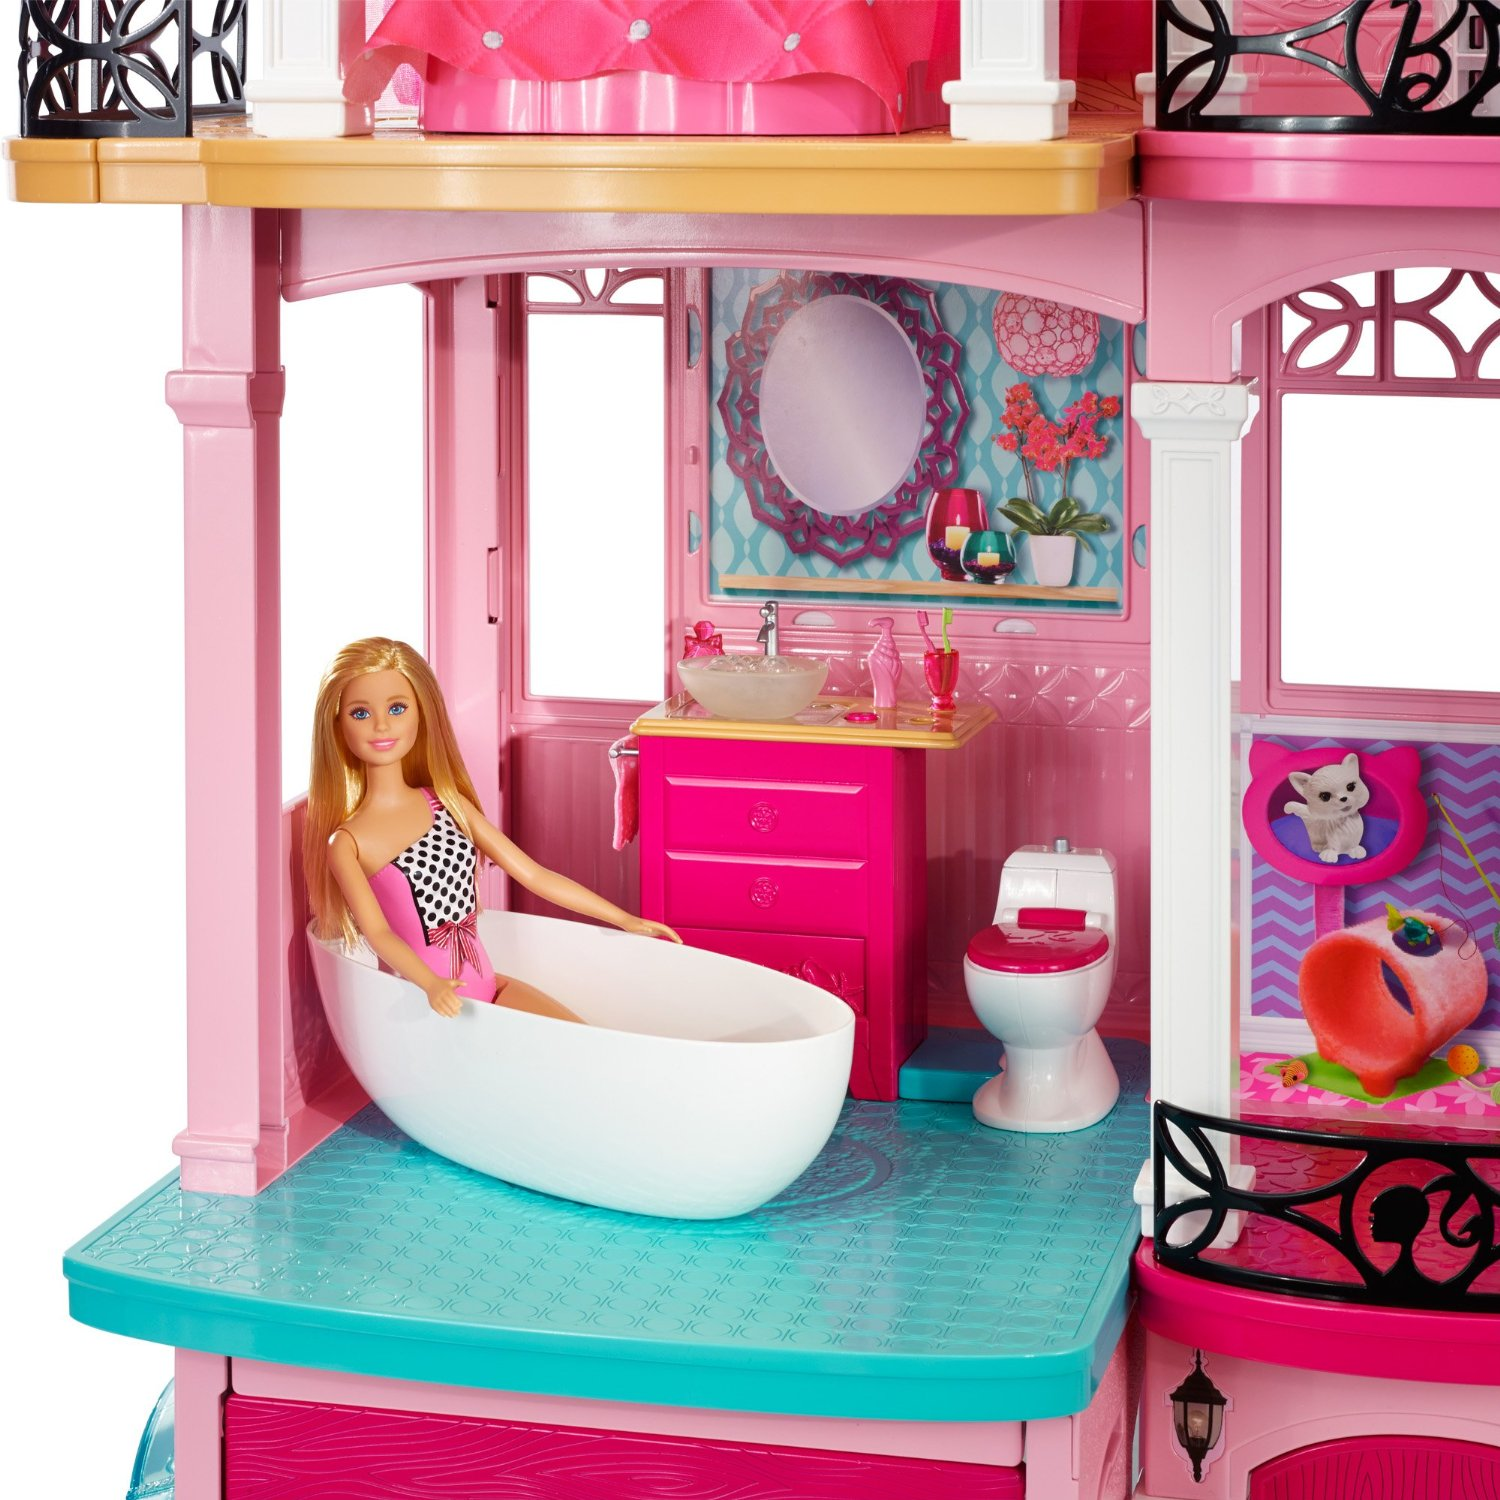 Barbie House Design Amazon Barbie Dreamhouse 164 99